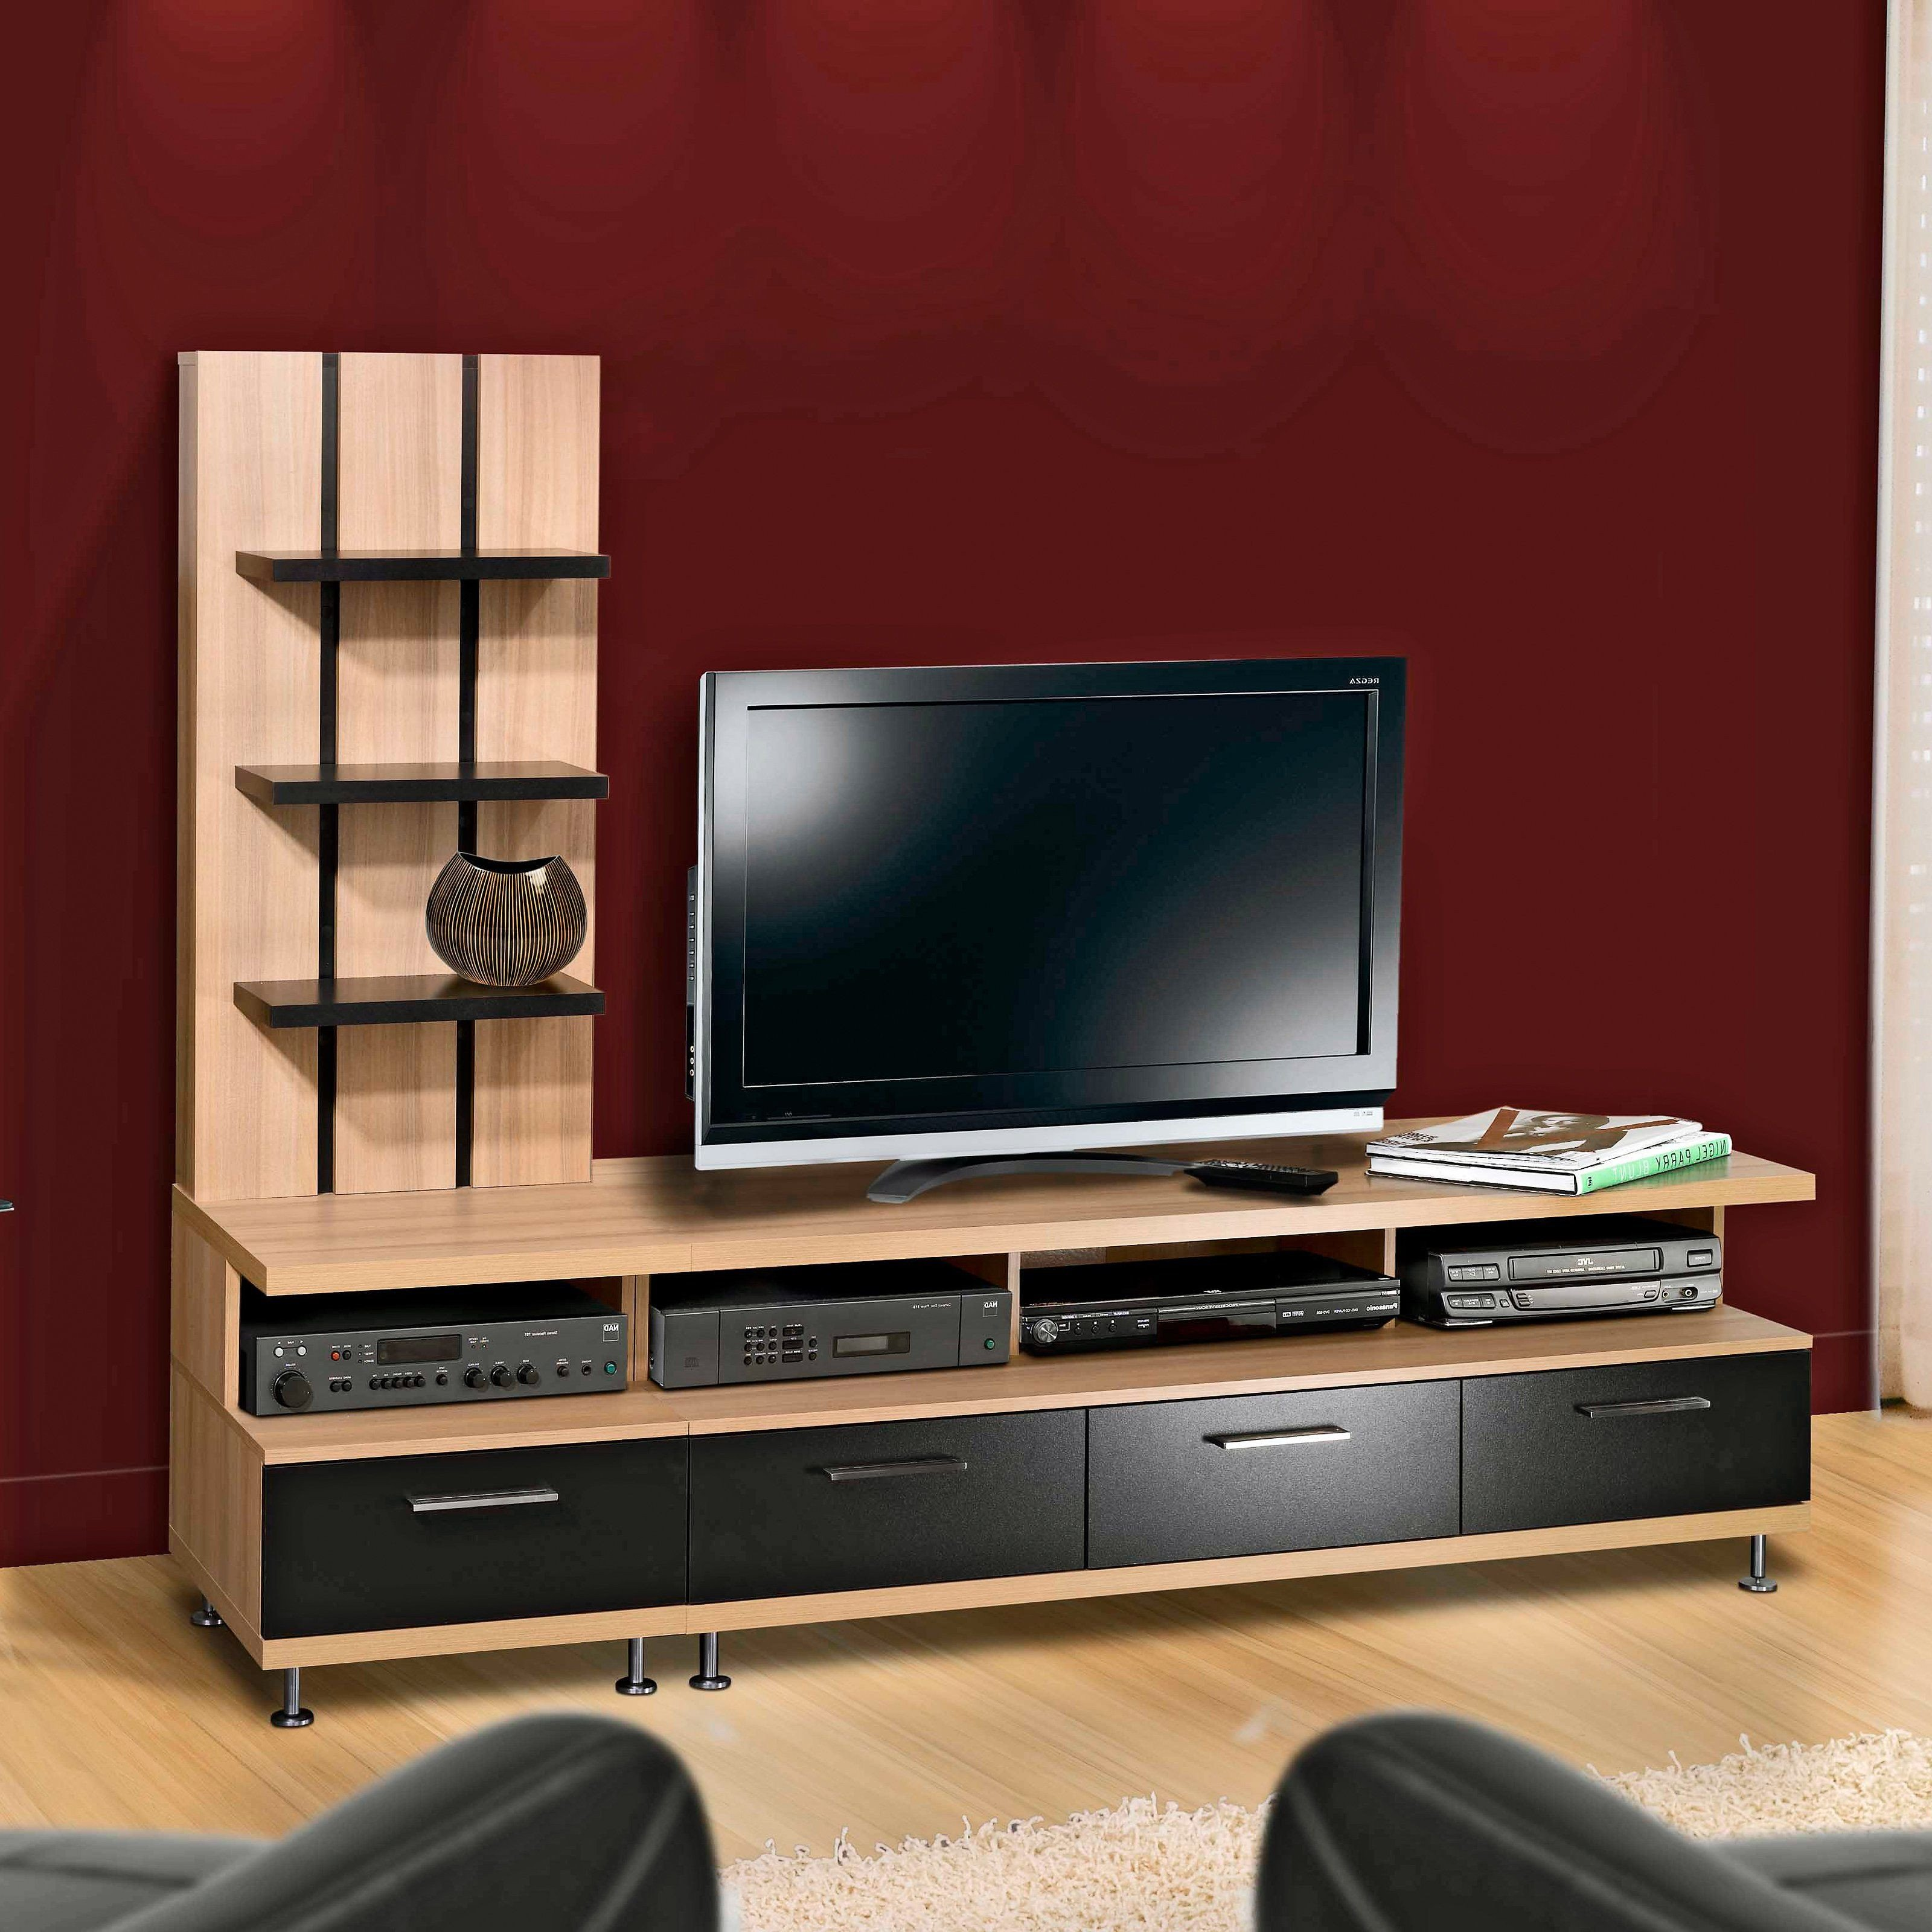 Small Tv Stand for Bedroom Lovely 44 Best Tv Stand Images